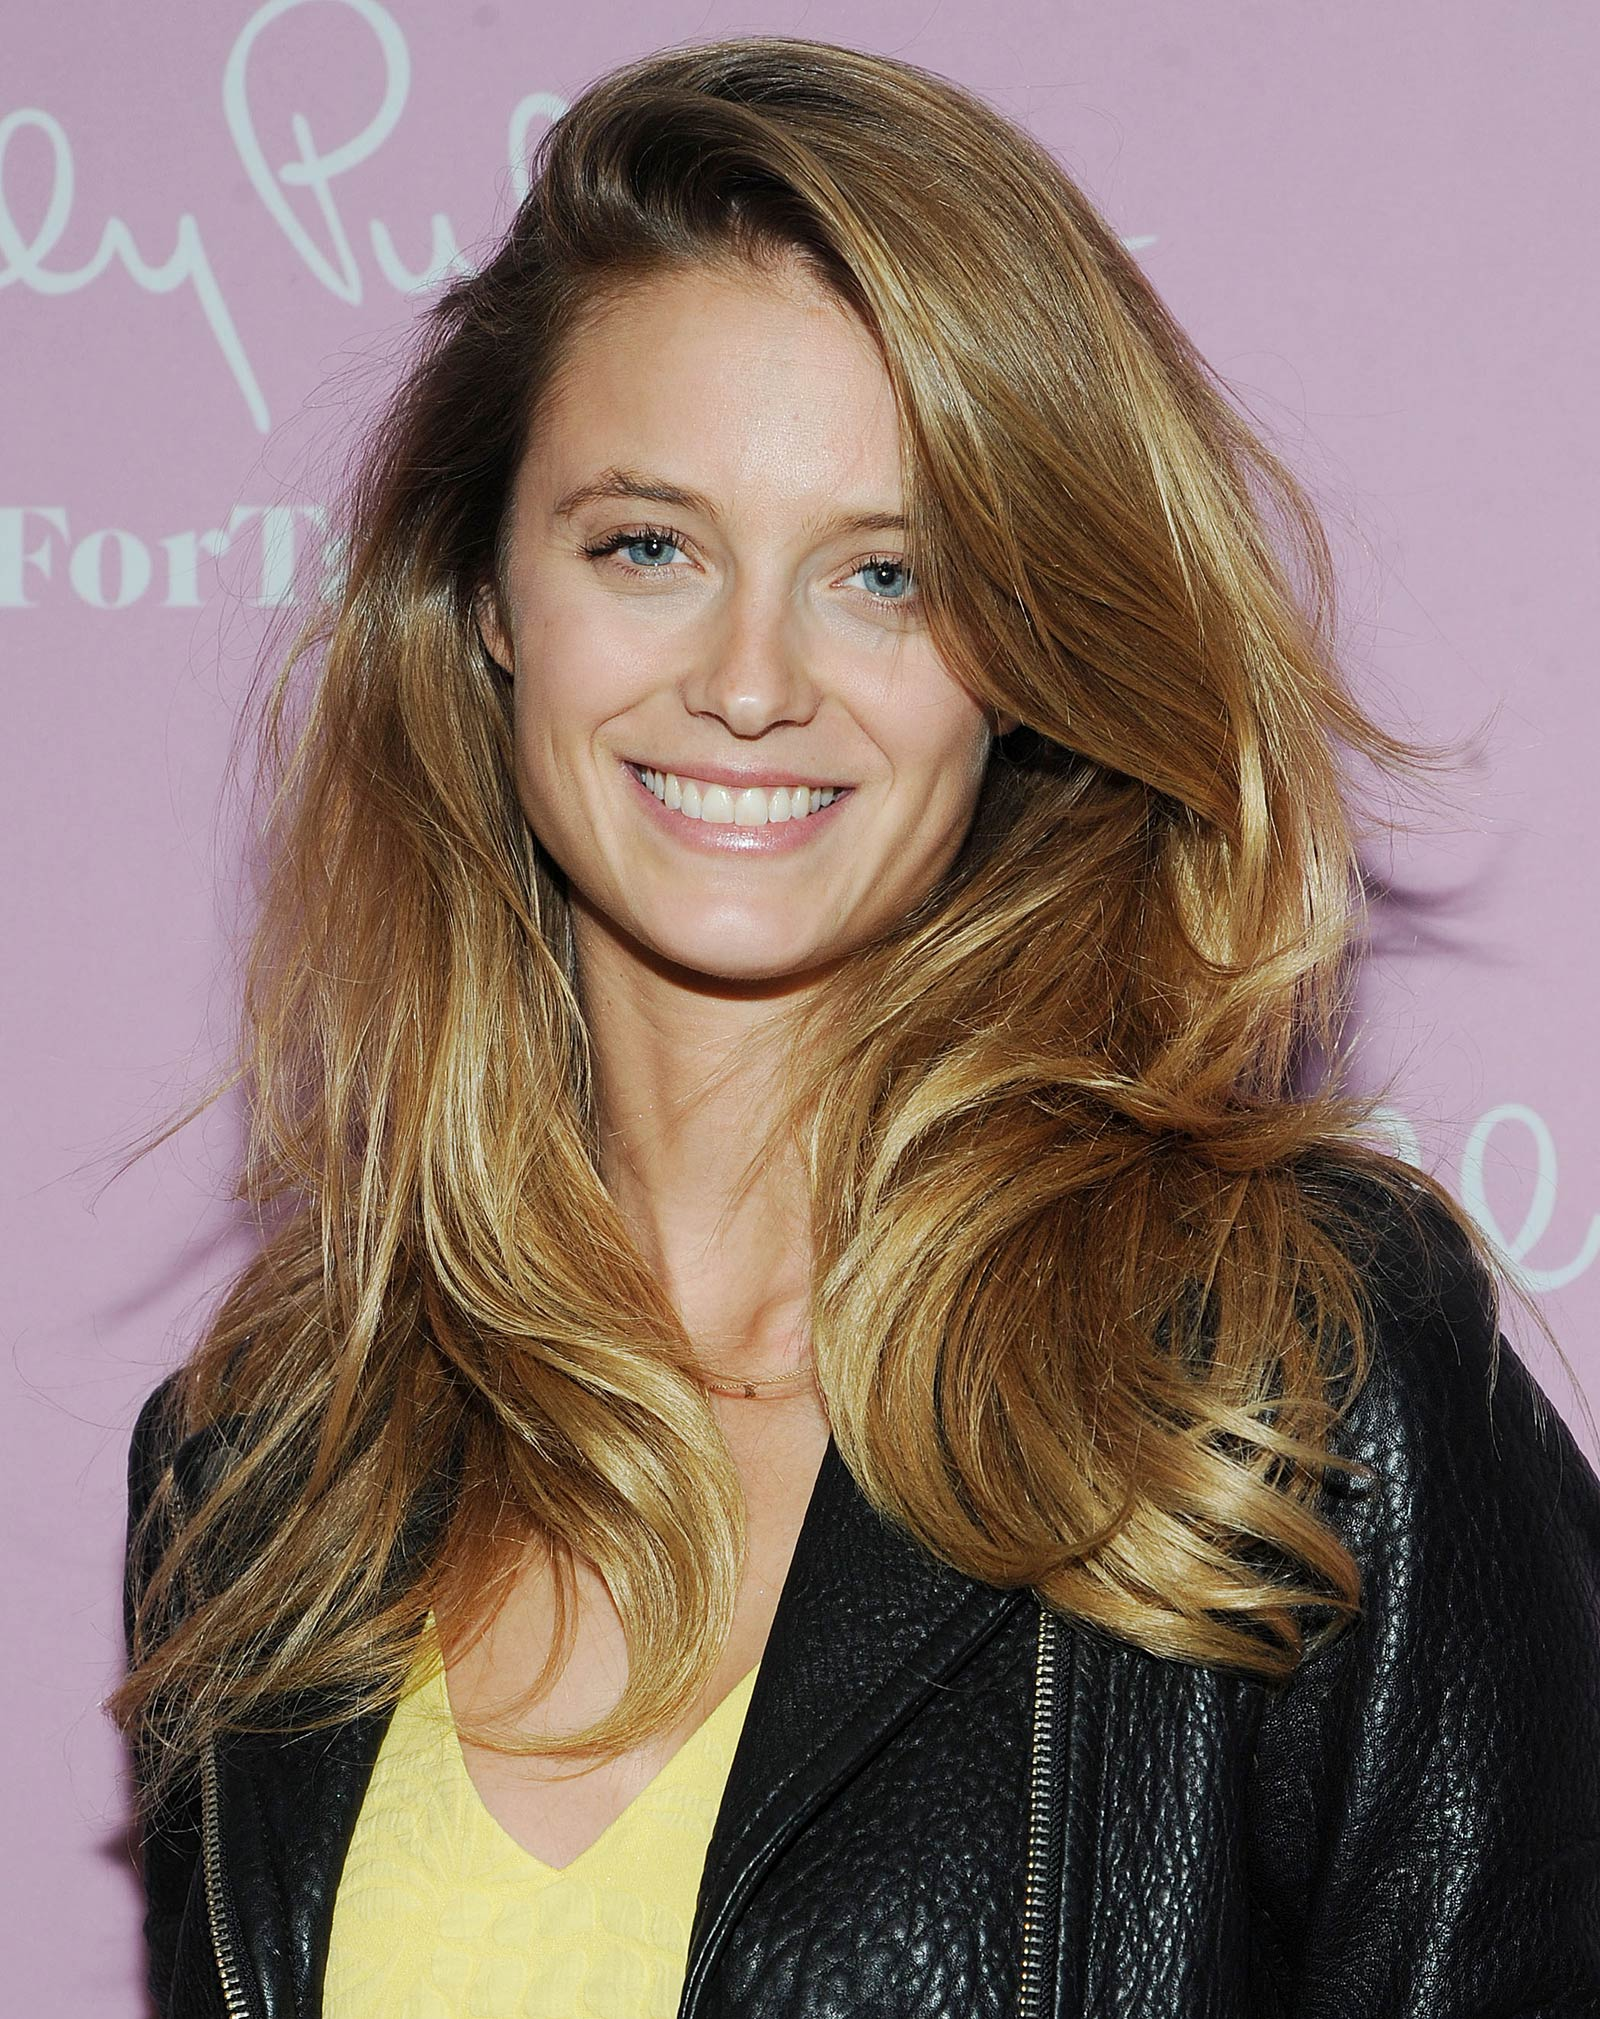 Kate Bock attends Lilly Pulitzer for Target event